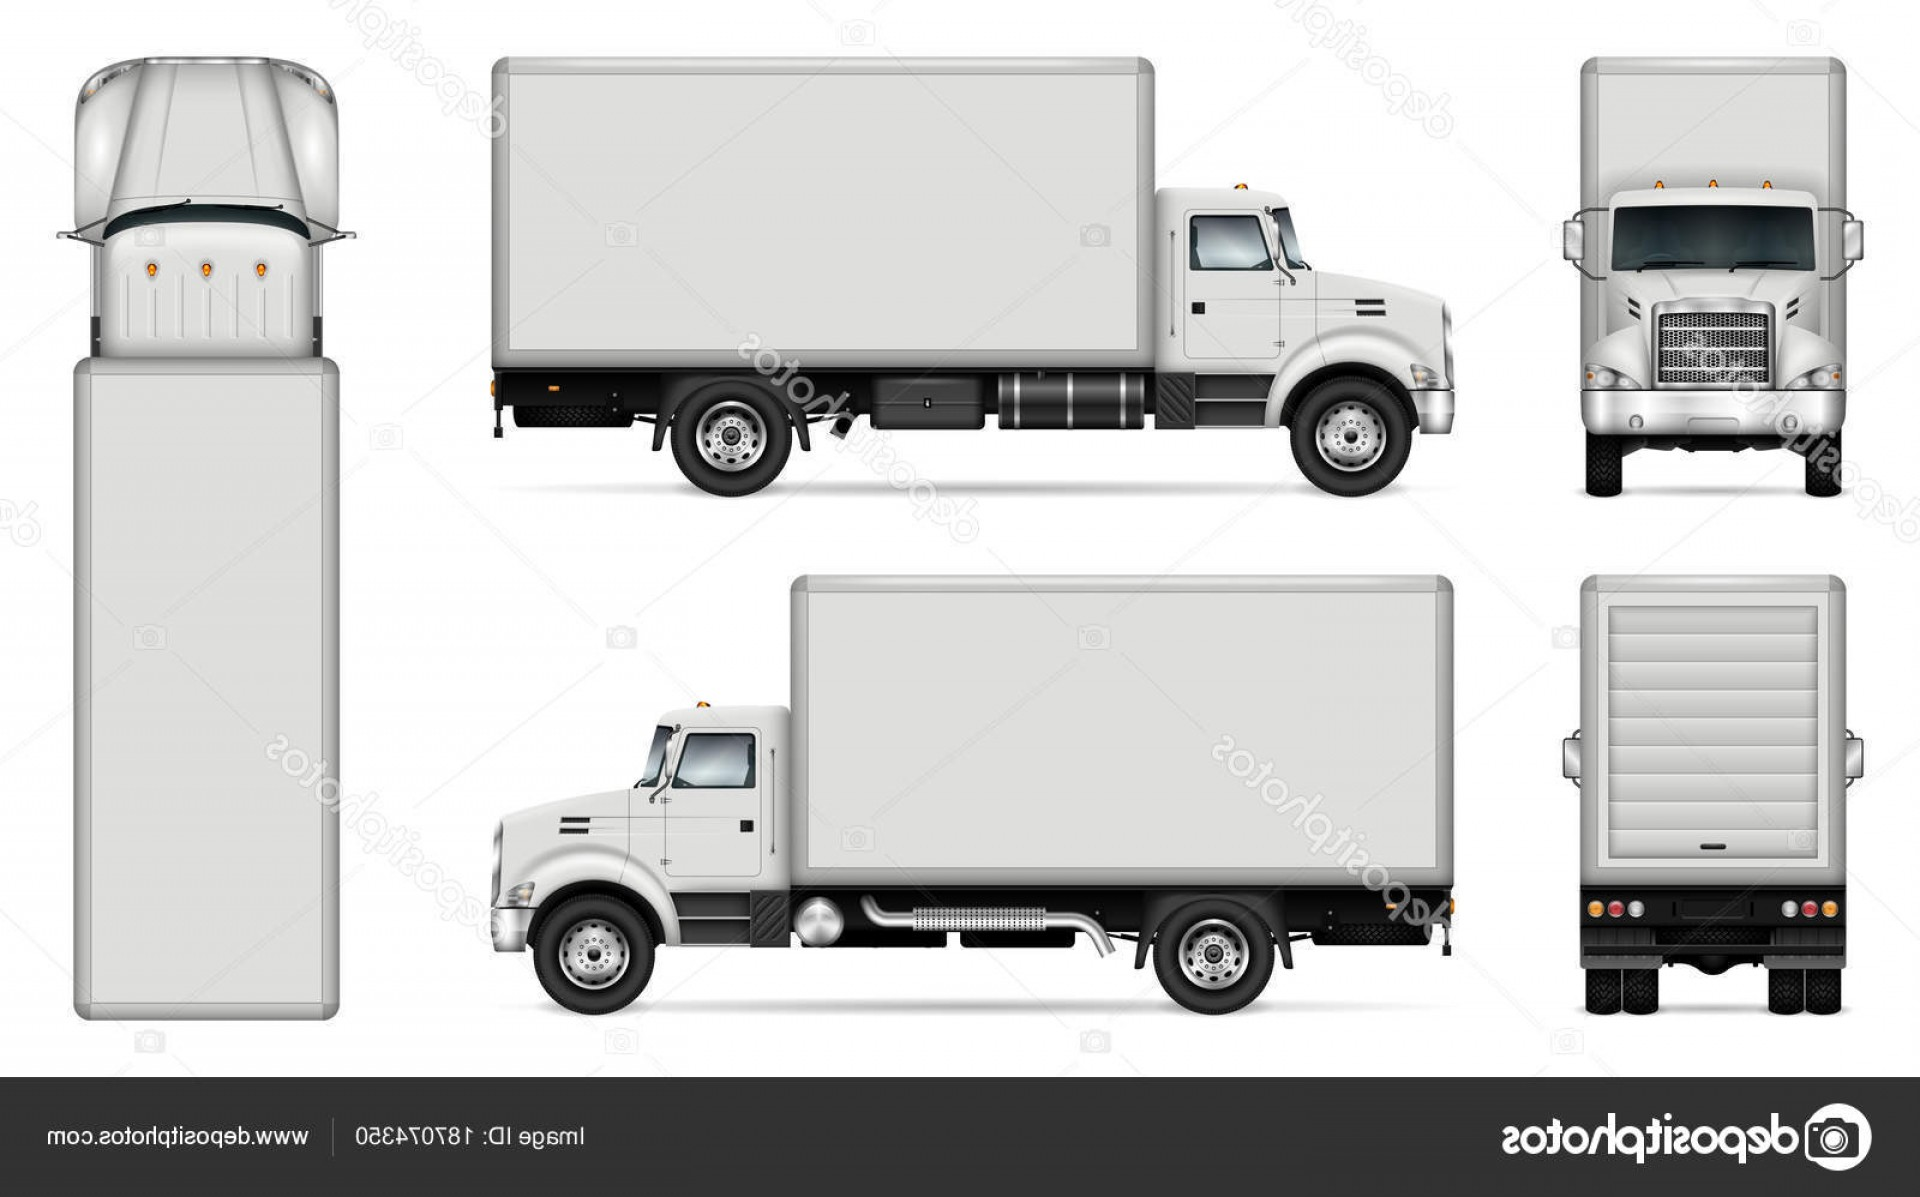 Packages On A Truck Vector: Stock Illustration Box Truck Vector Mockup